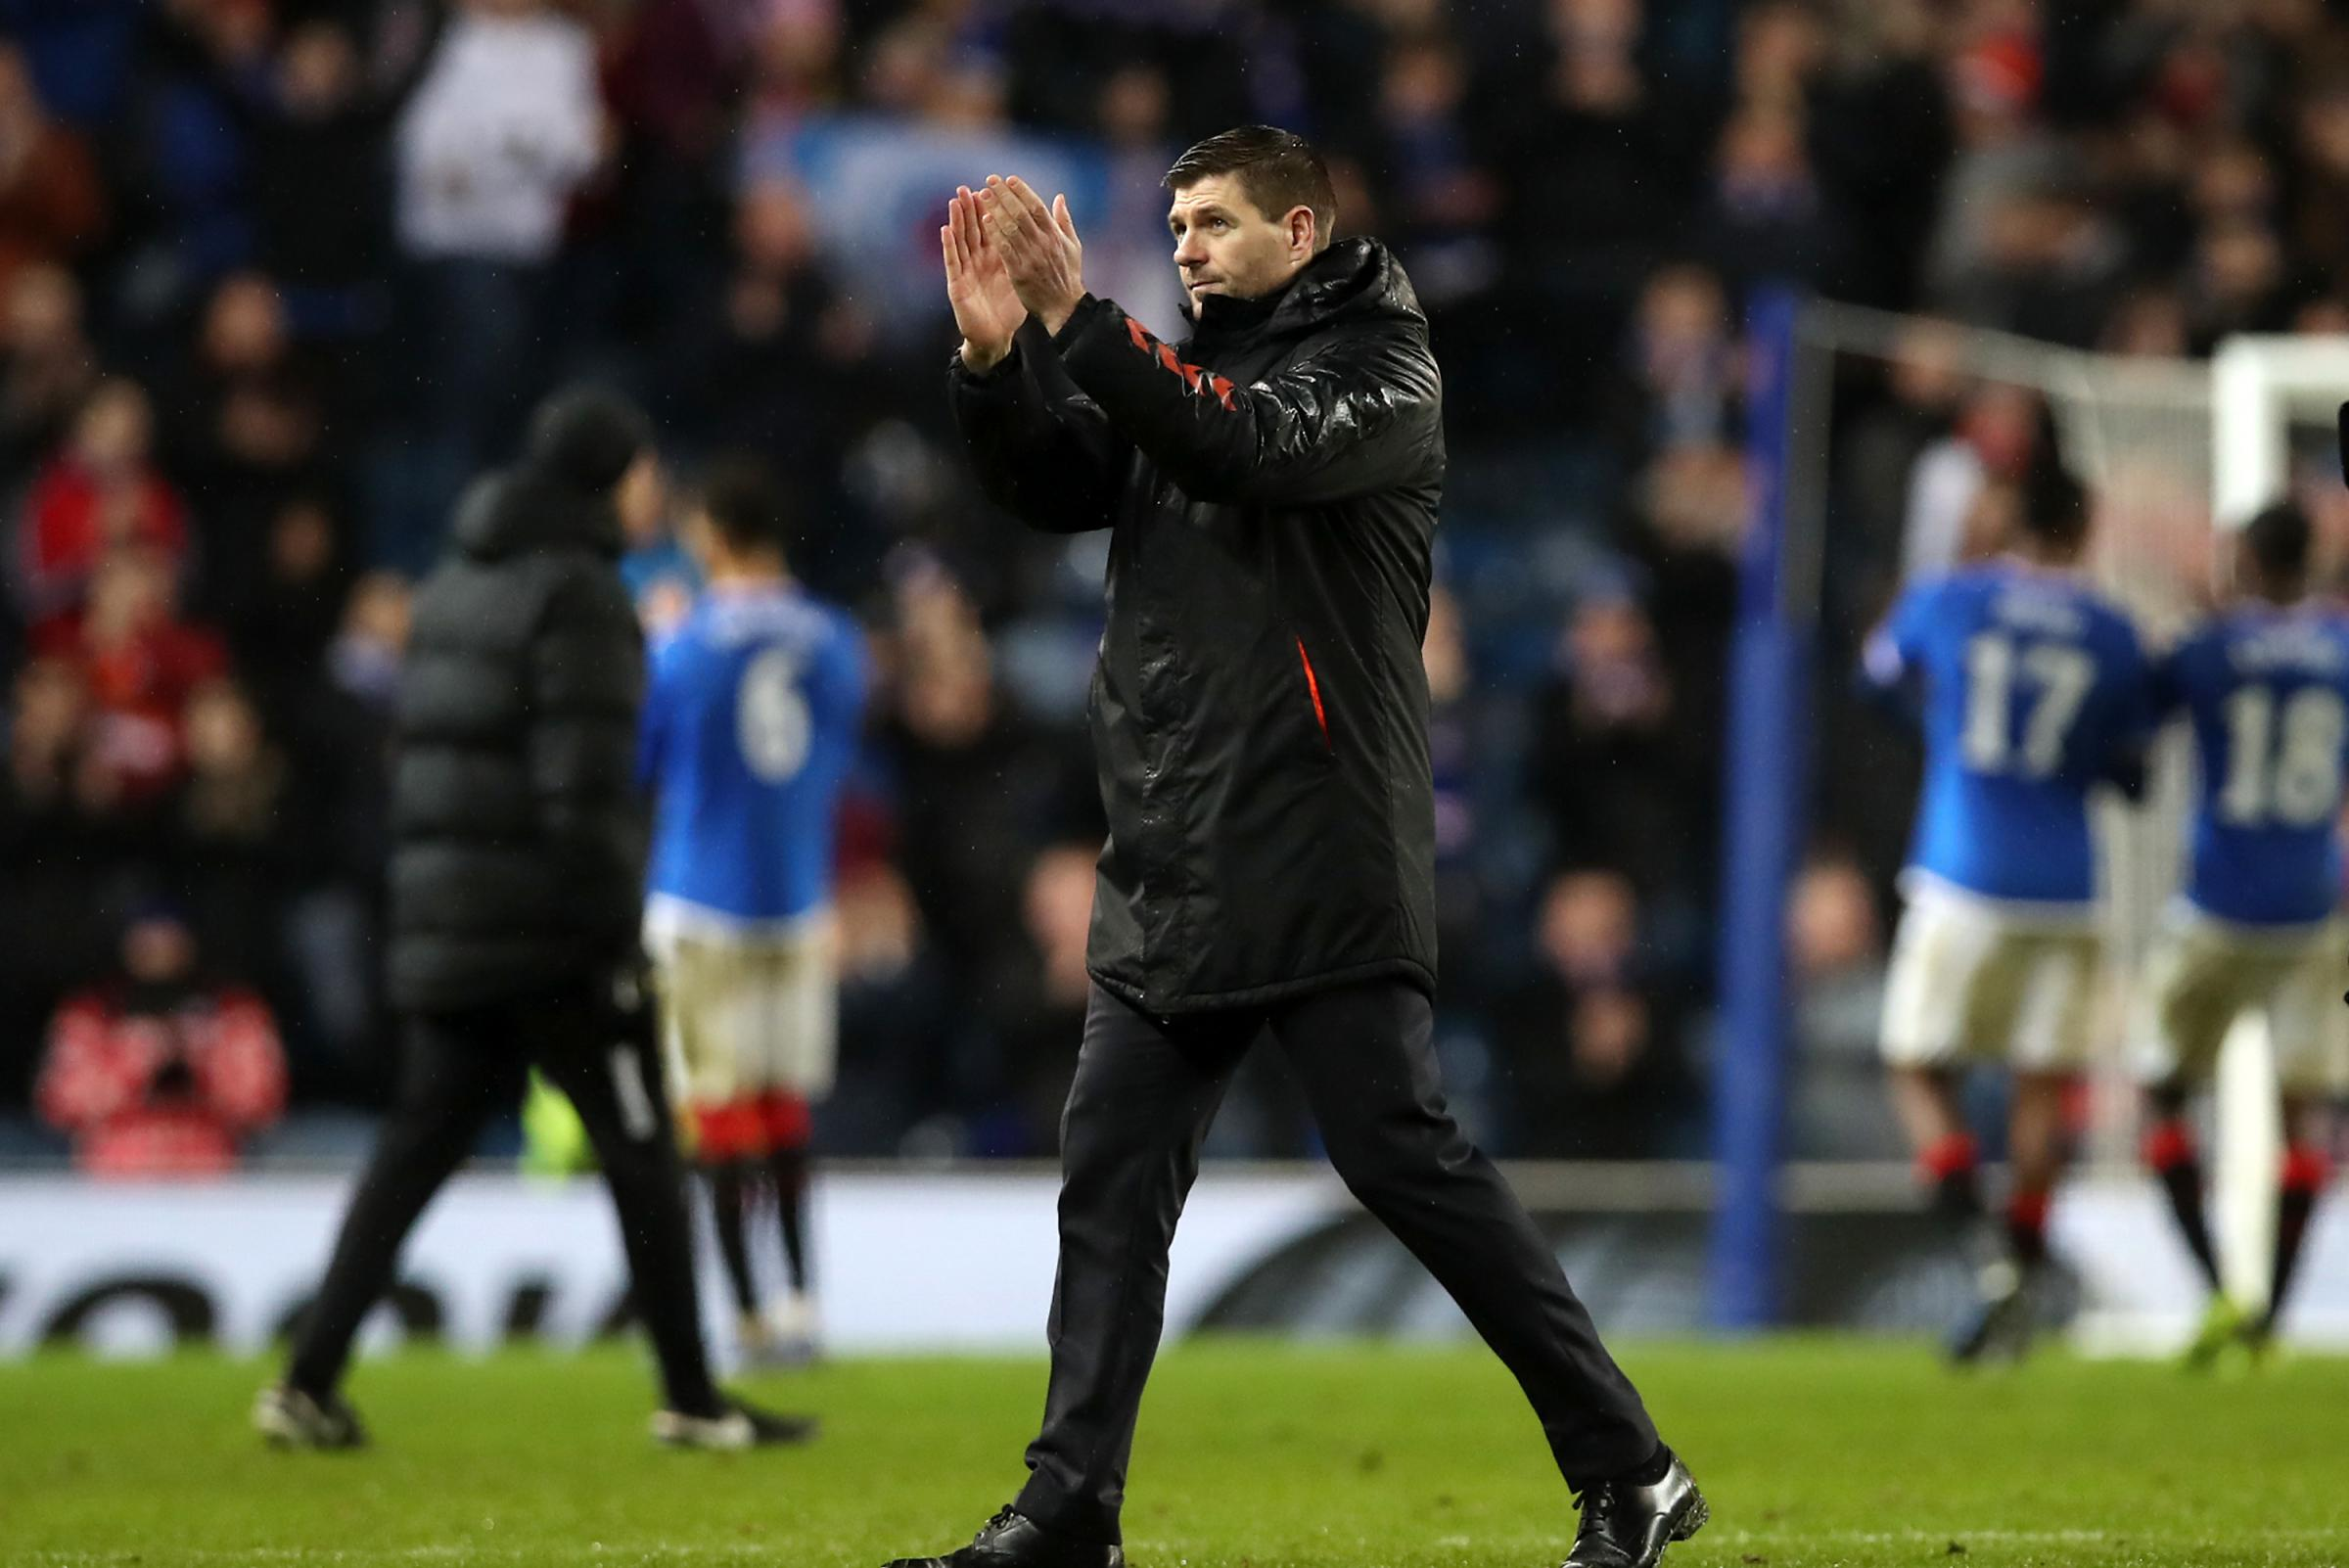 Steven Gerrard determined to repay Rangers fans with silverware after clinching new Ibrox deal